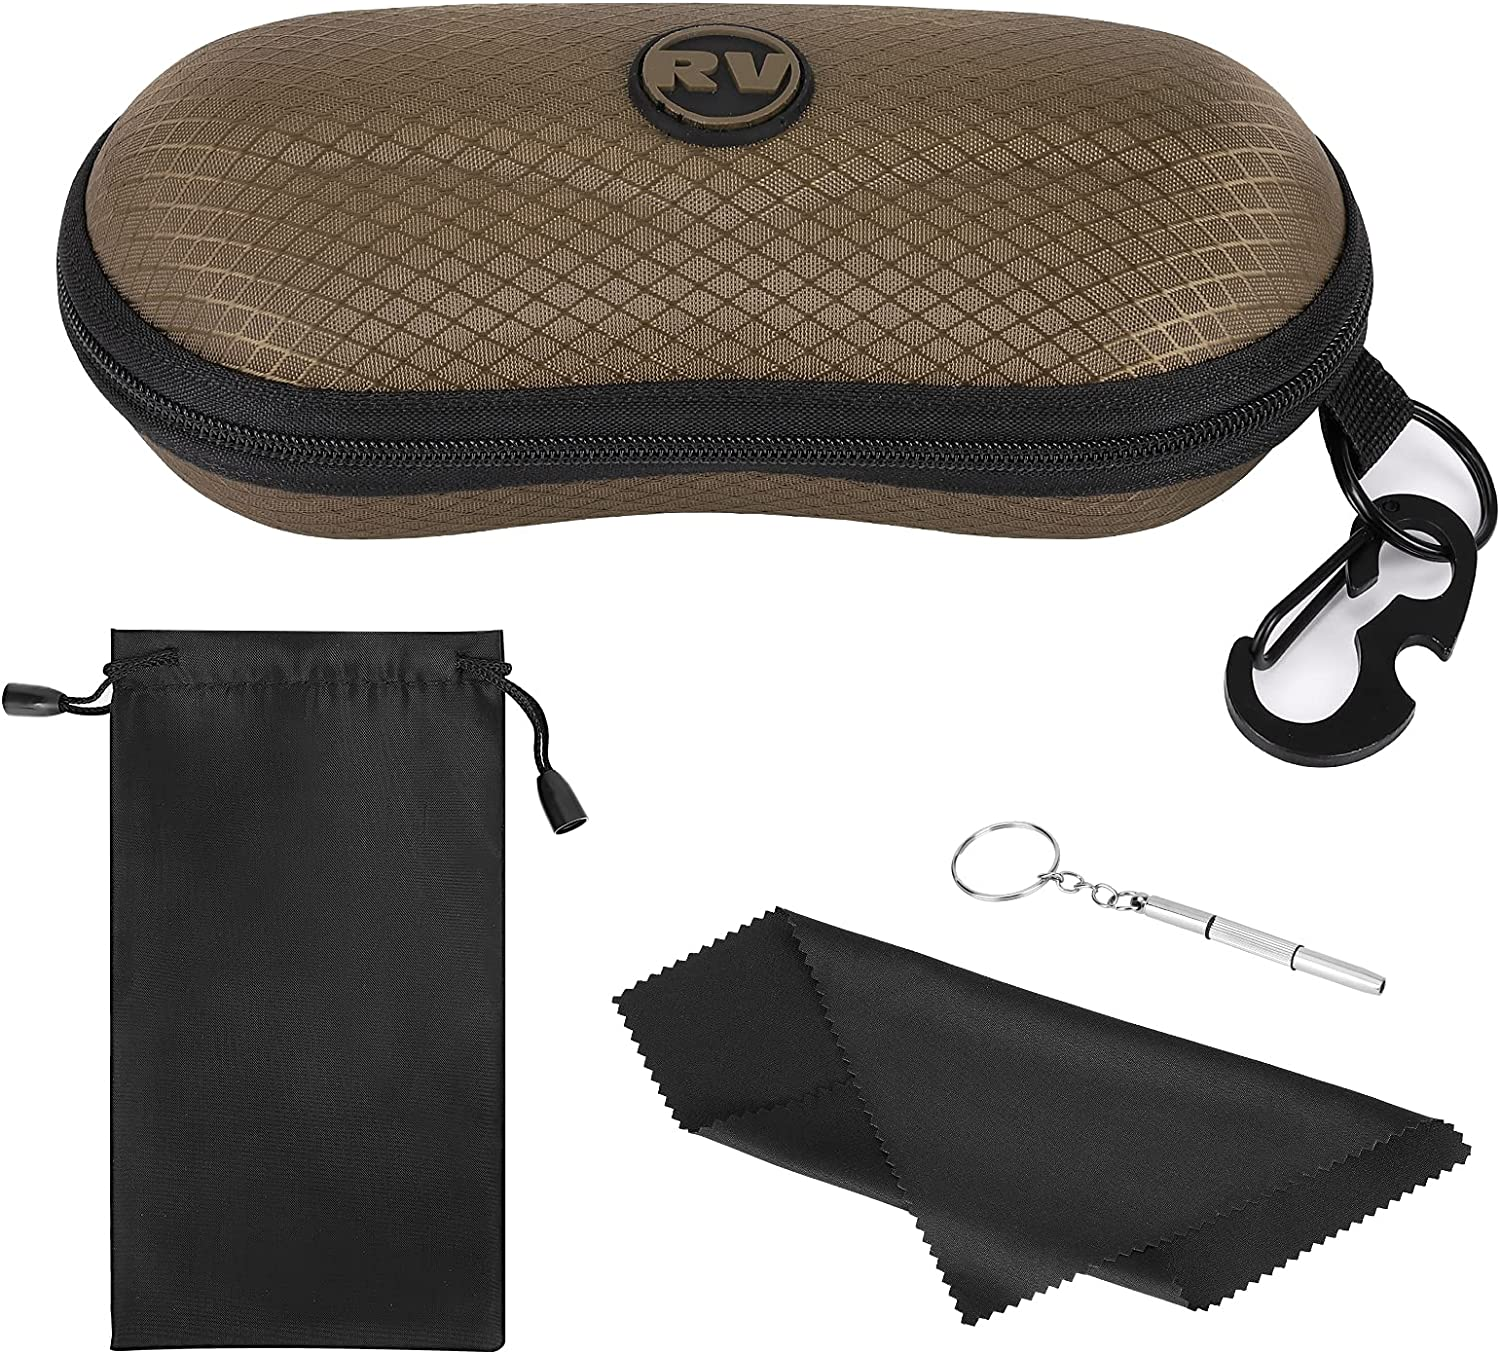 Rhino Valley Sunglasses Case, EVA Hard Shell Sports Eyeglasses Organizer Case with Metal Hanging Hook and Screwdriver